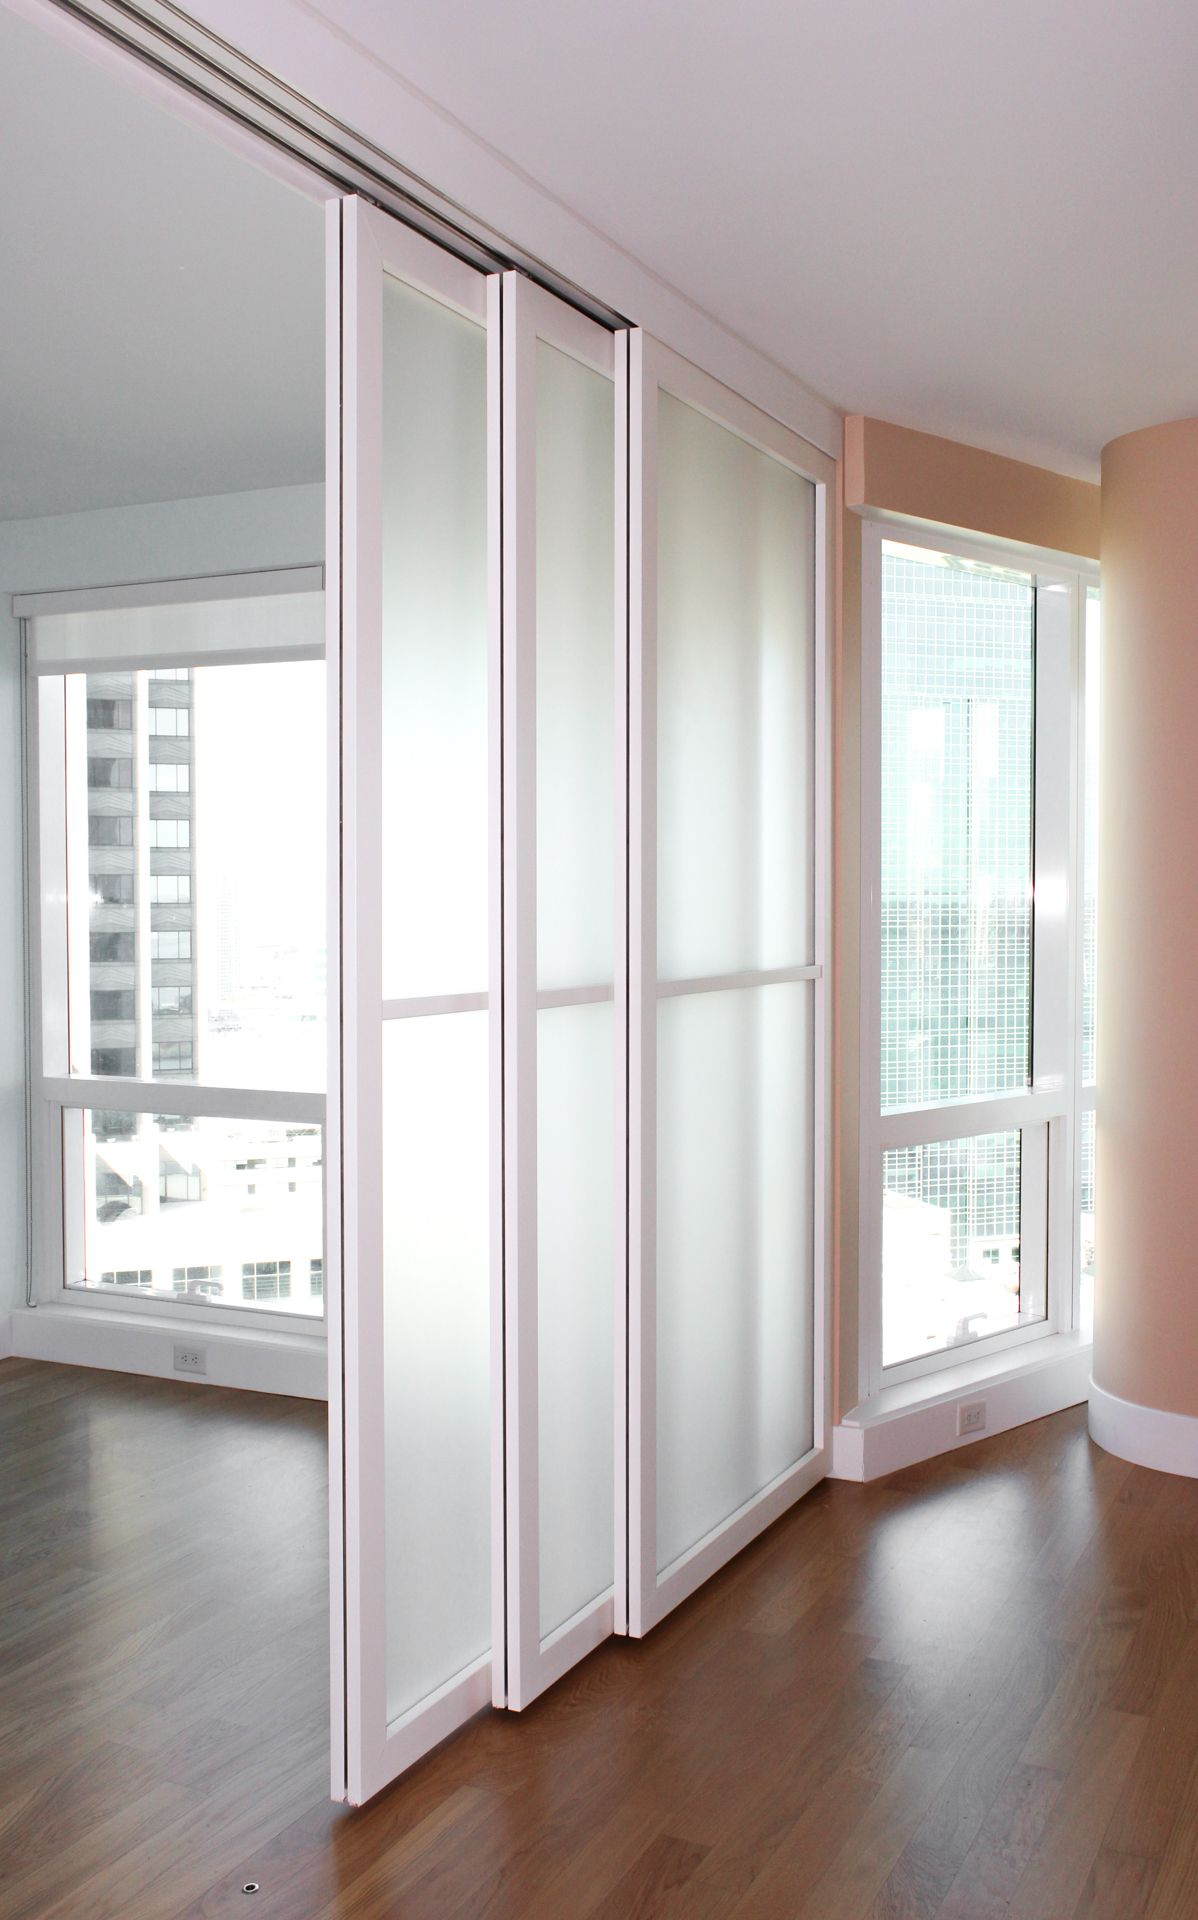 Home Office Sliding Glass Room Dividers Inspirational Gallery: Small Apartment Hacks, Room Divider Doors